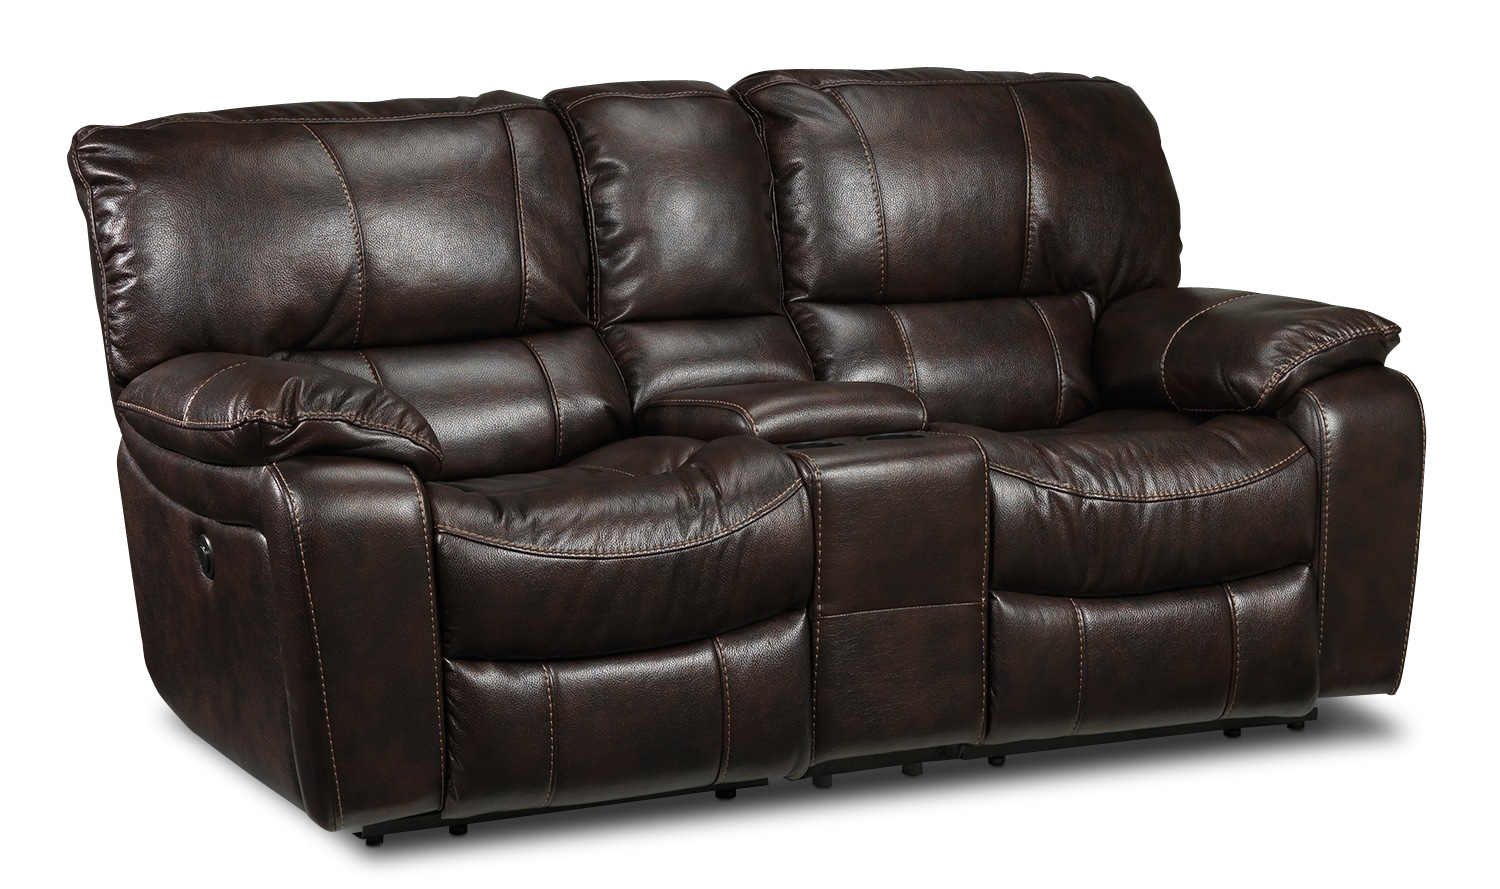 Living Room Furniture - Santorini Power Reclining Loveseat - Walnut